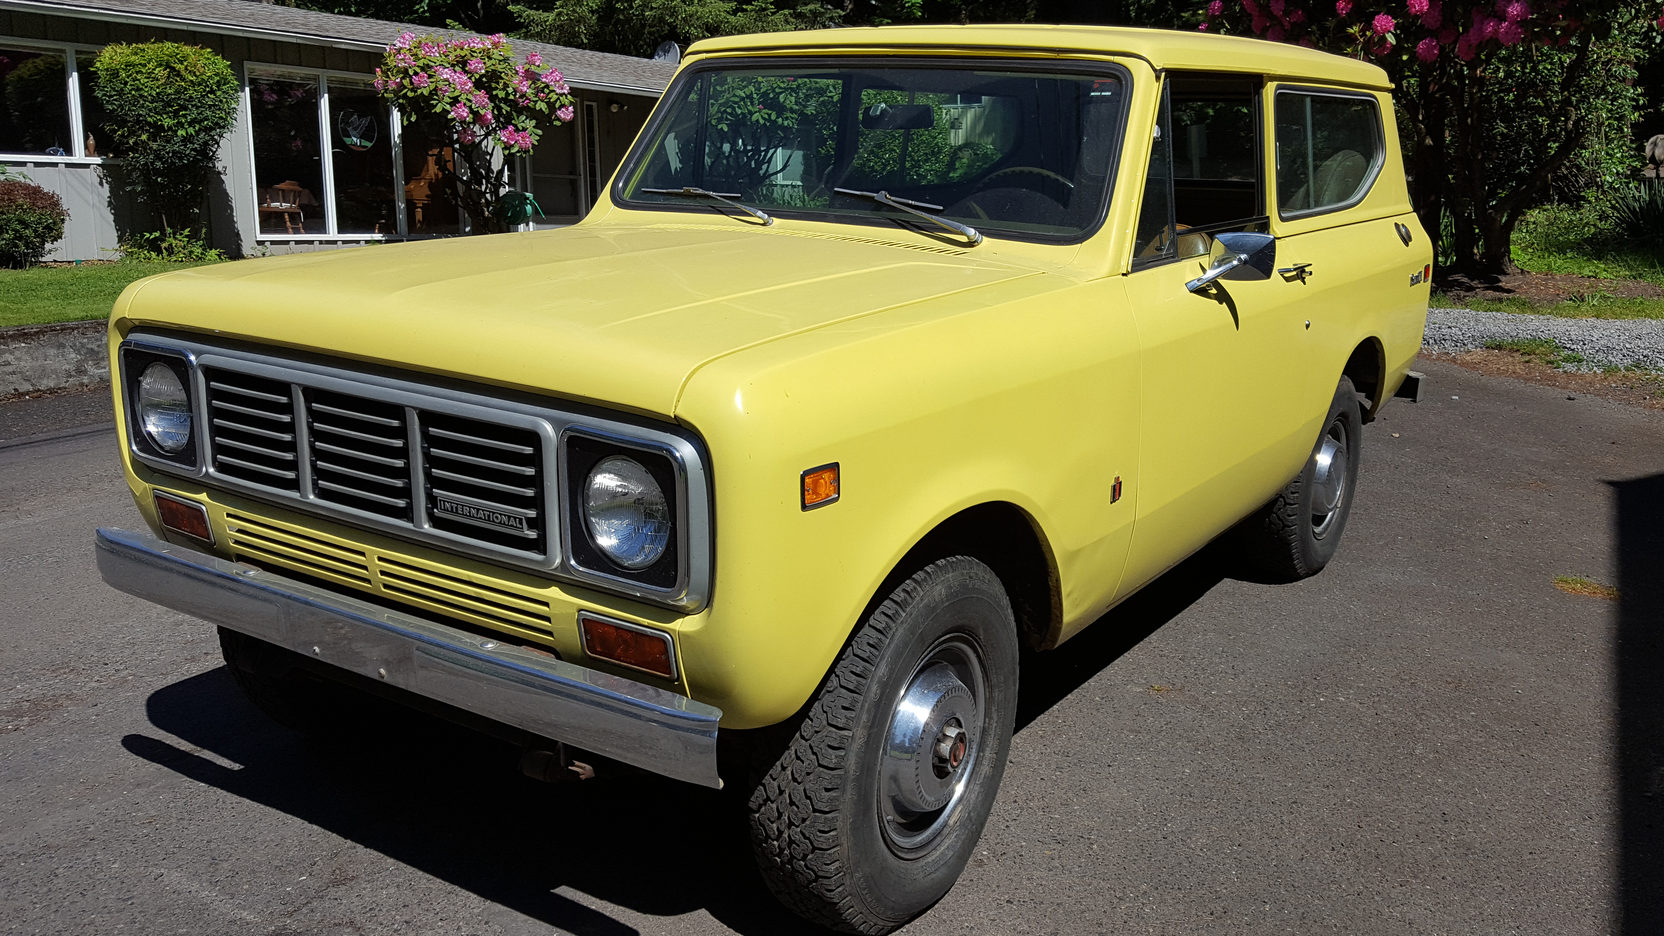 1976 International Harvester Scout II